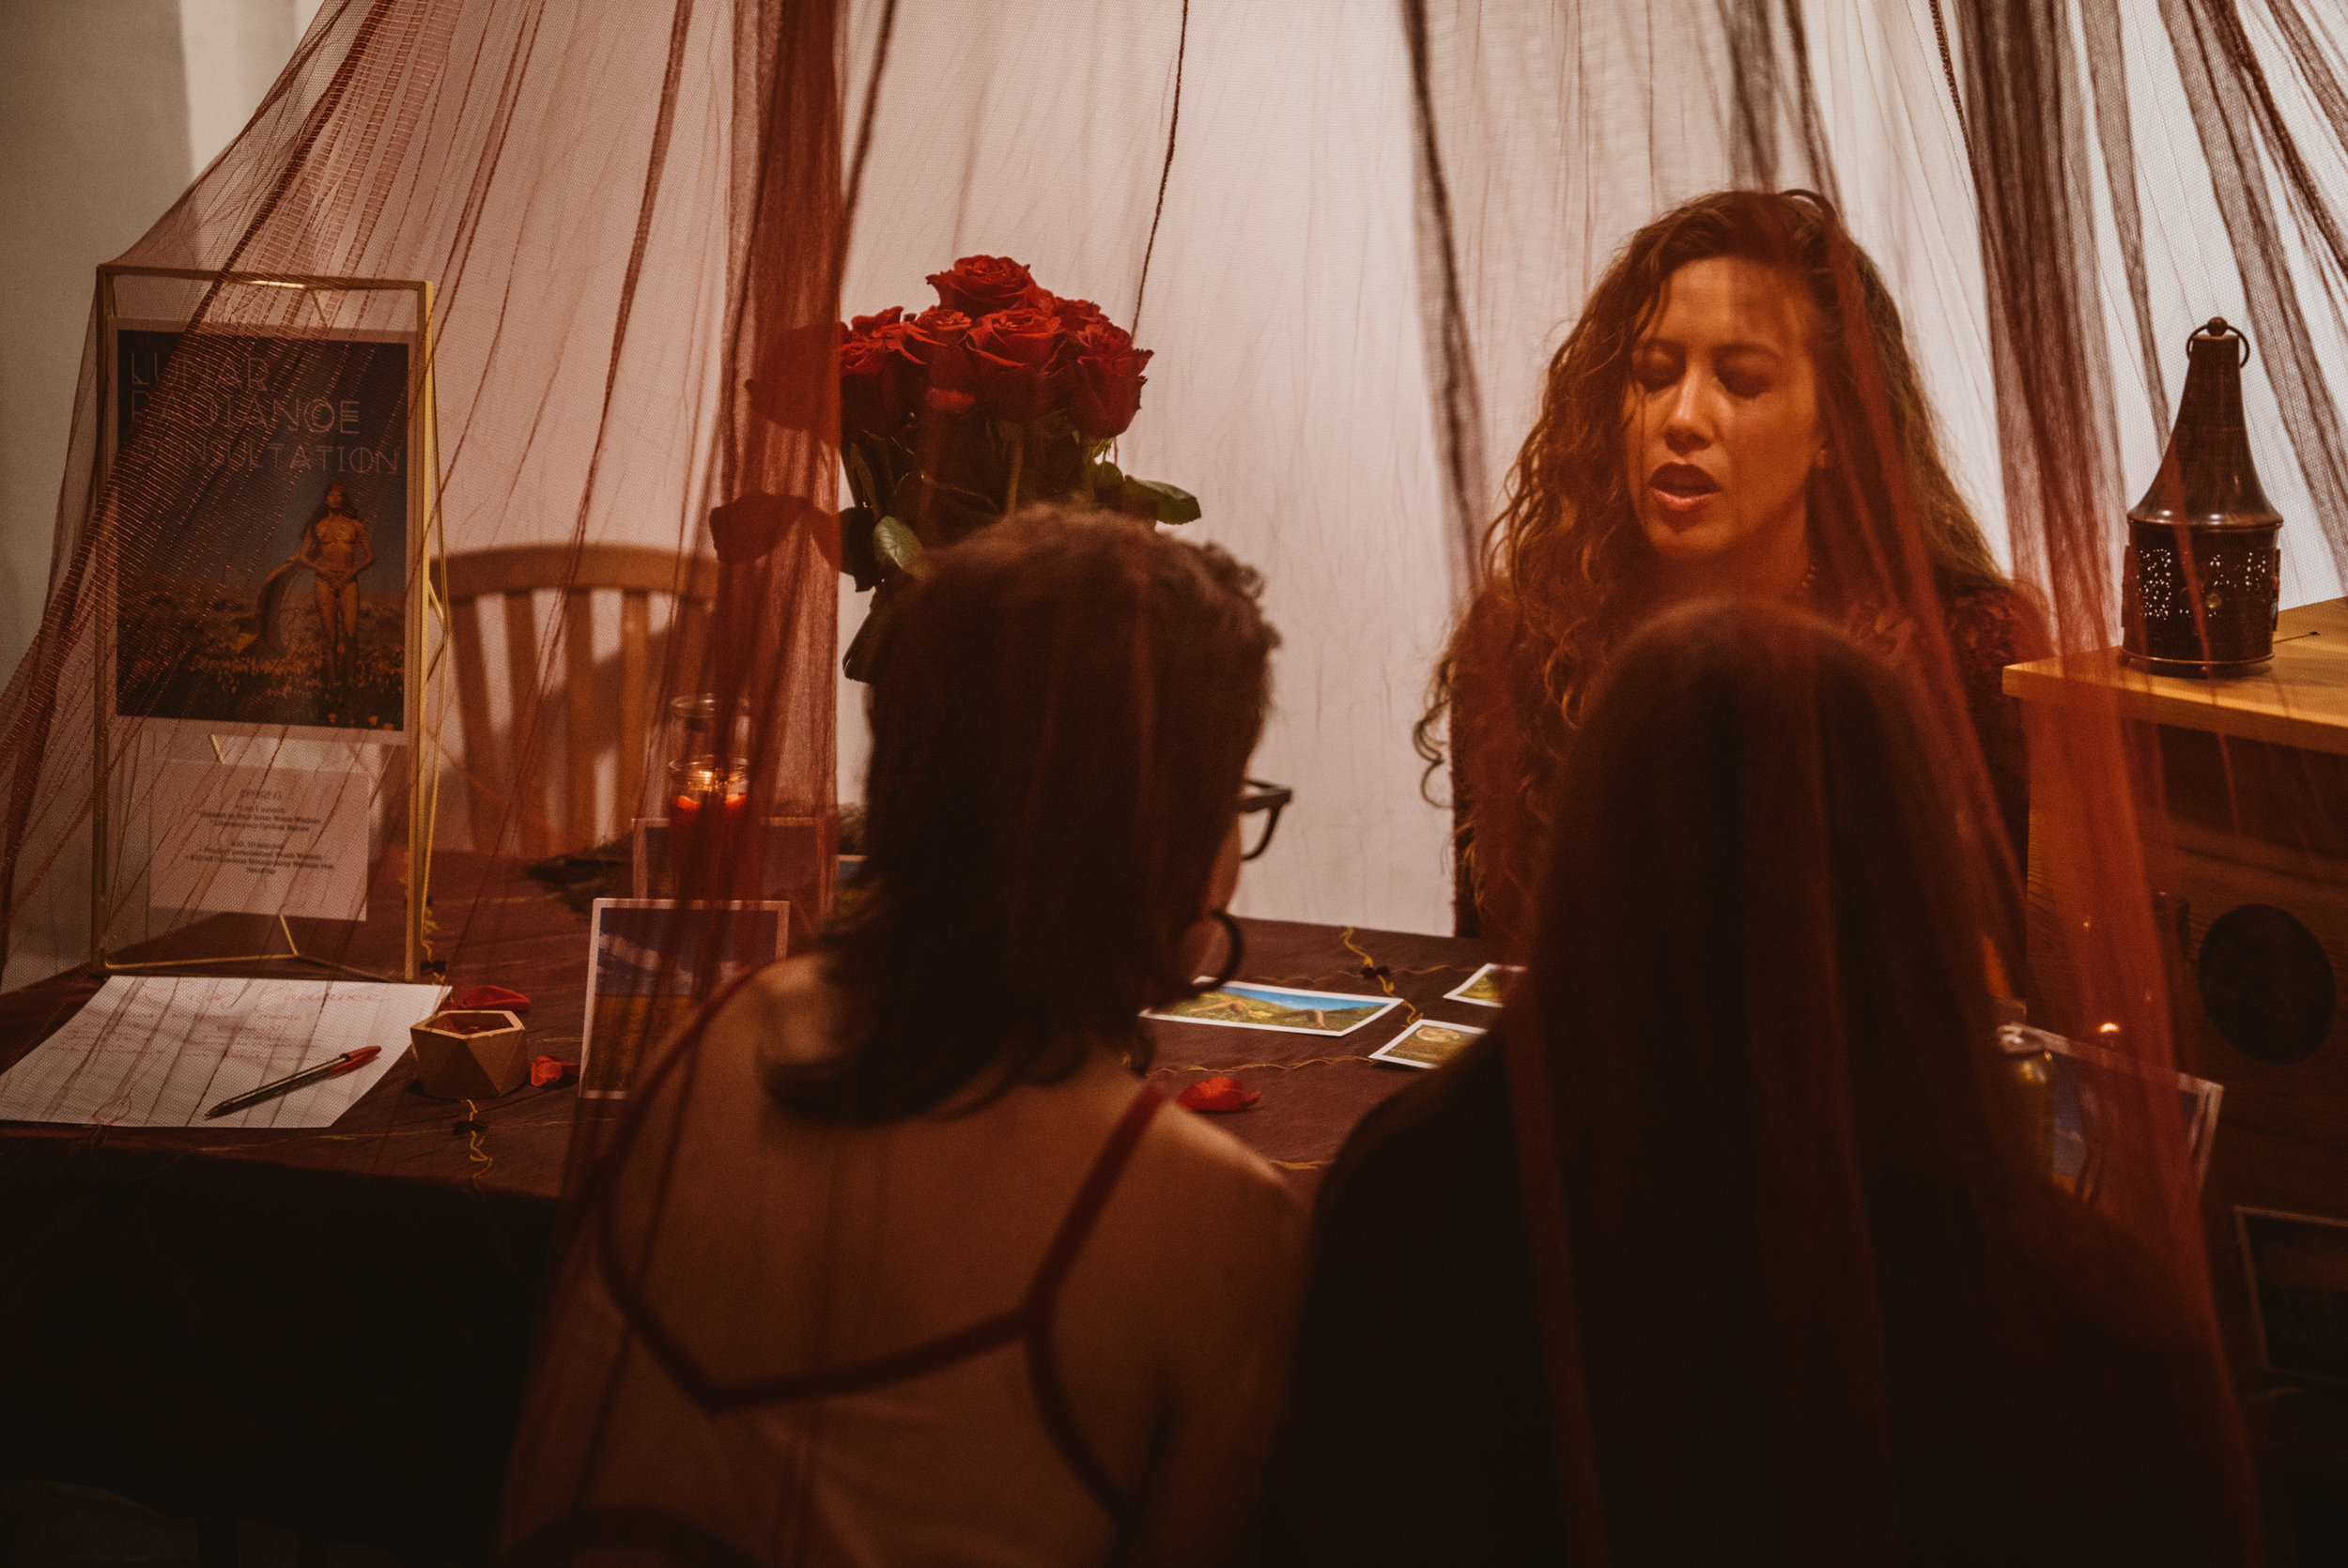 Lunar Radiance Consultations at Pussy Powerhouse presents On My Period